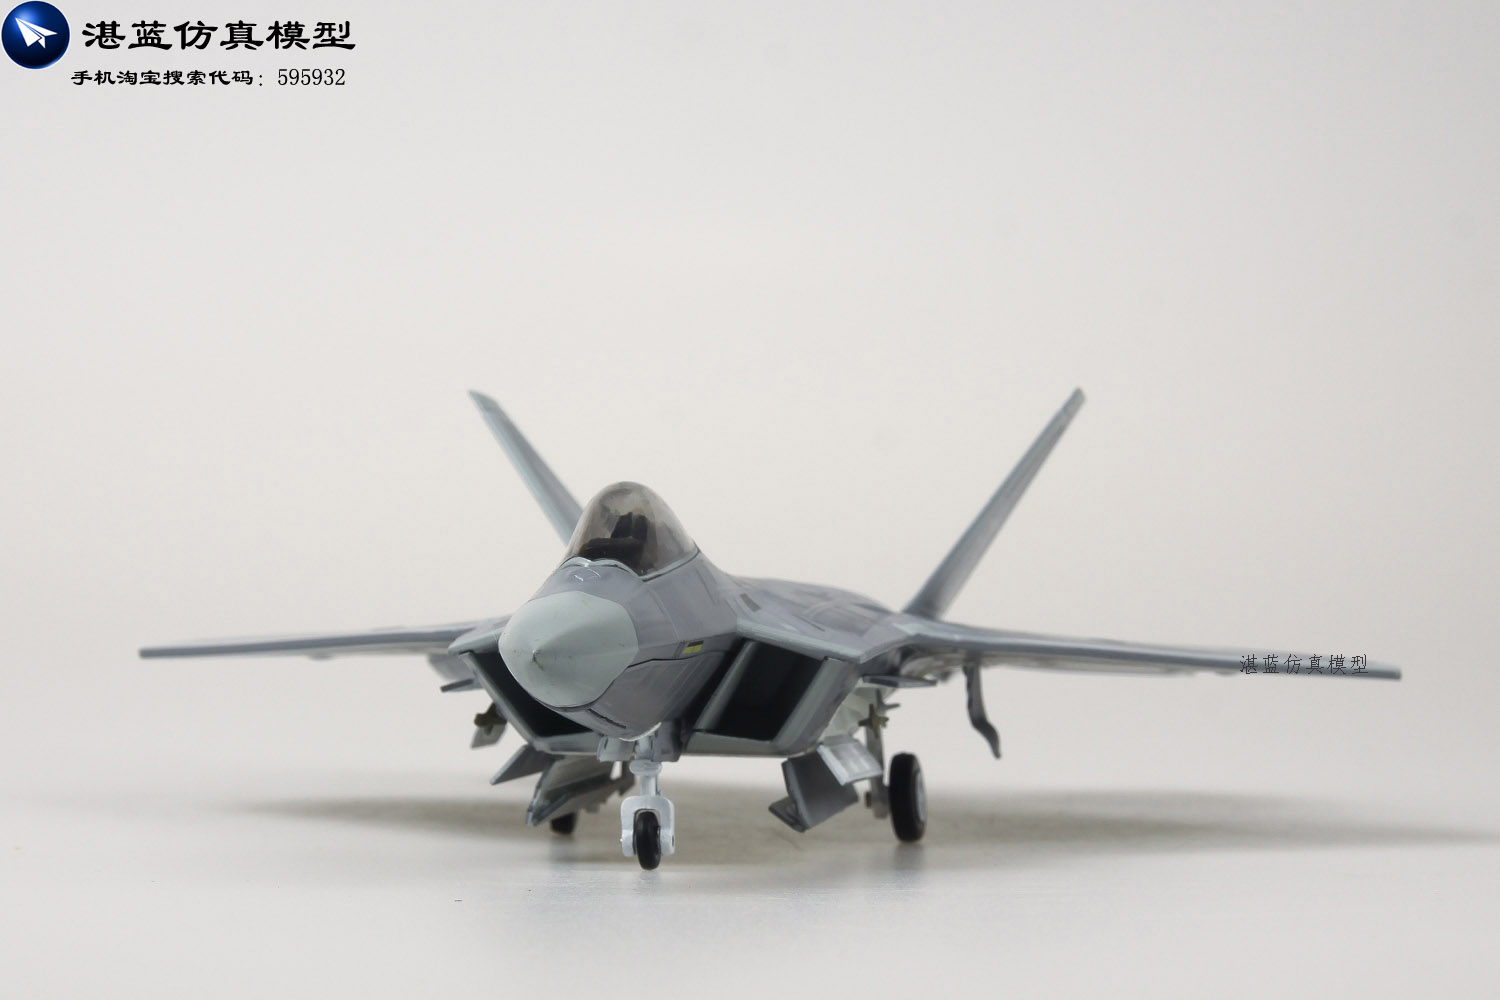 Brand New 1/72 Scale Airplane Model Toys USAF F-22 Raptor Fighter Diecast Metal Plane Model Toy For Gift/Collection/Decoration offer wings xx2602 special jc atr 72 new zealand zk mvb link 1 200 commercial jetliners plane model hobby